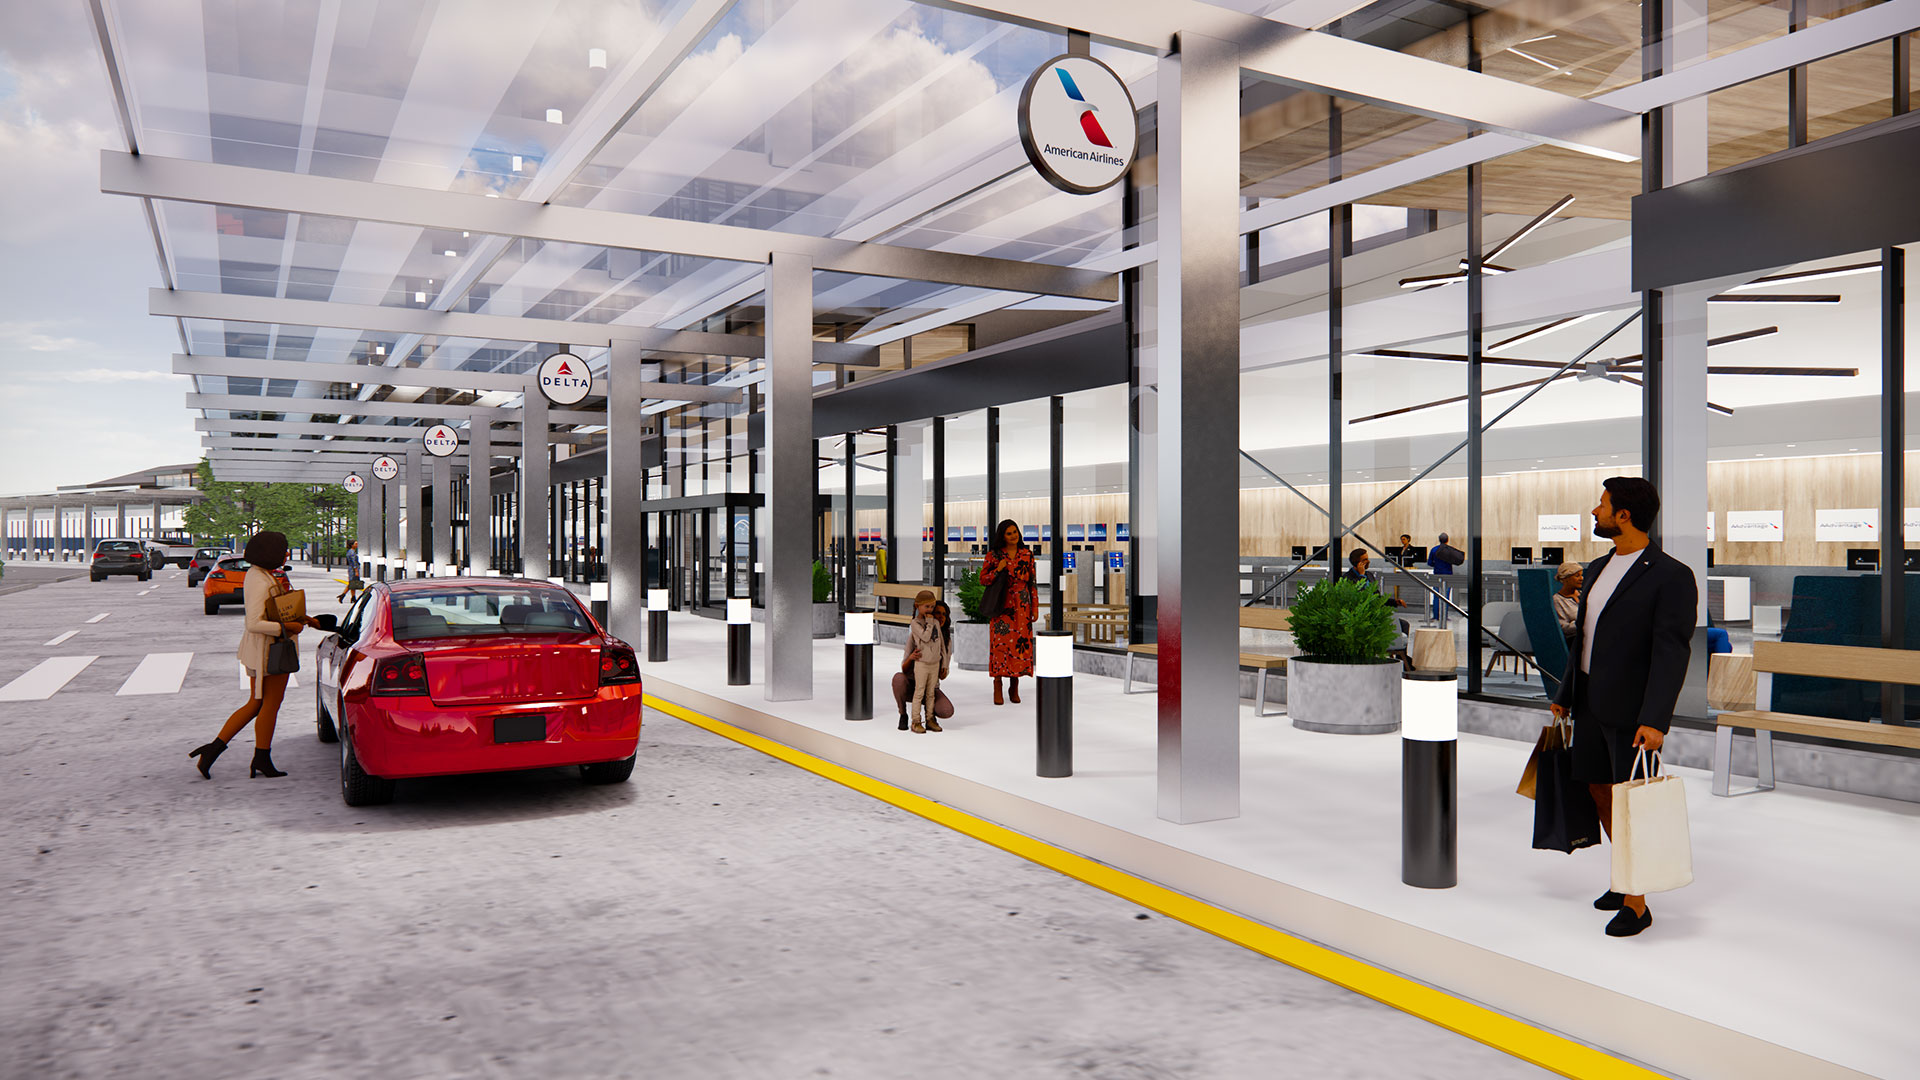 Quad City Airport Entry Rendering with red car